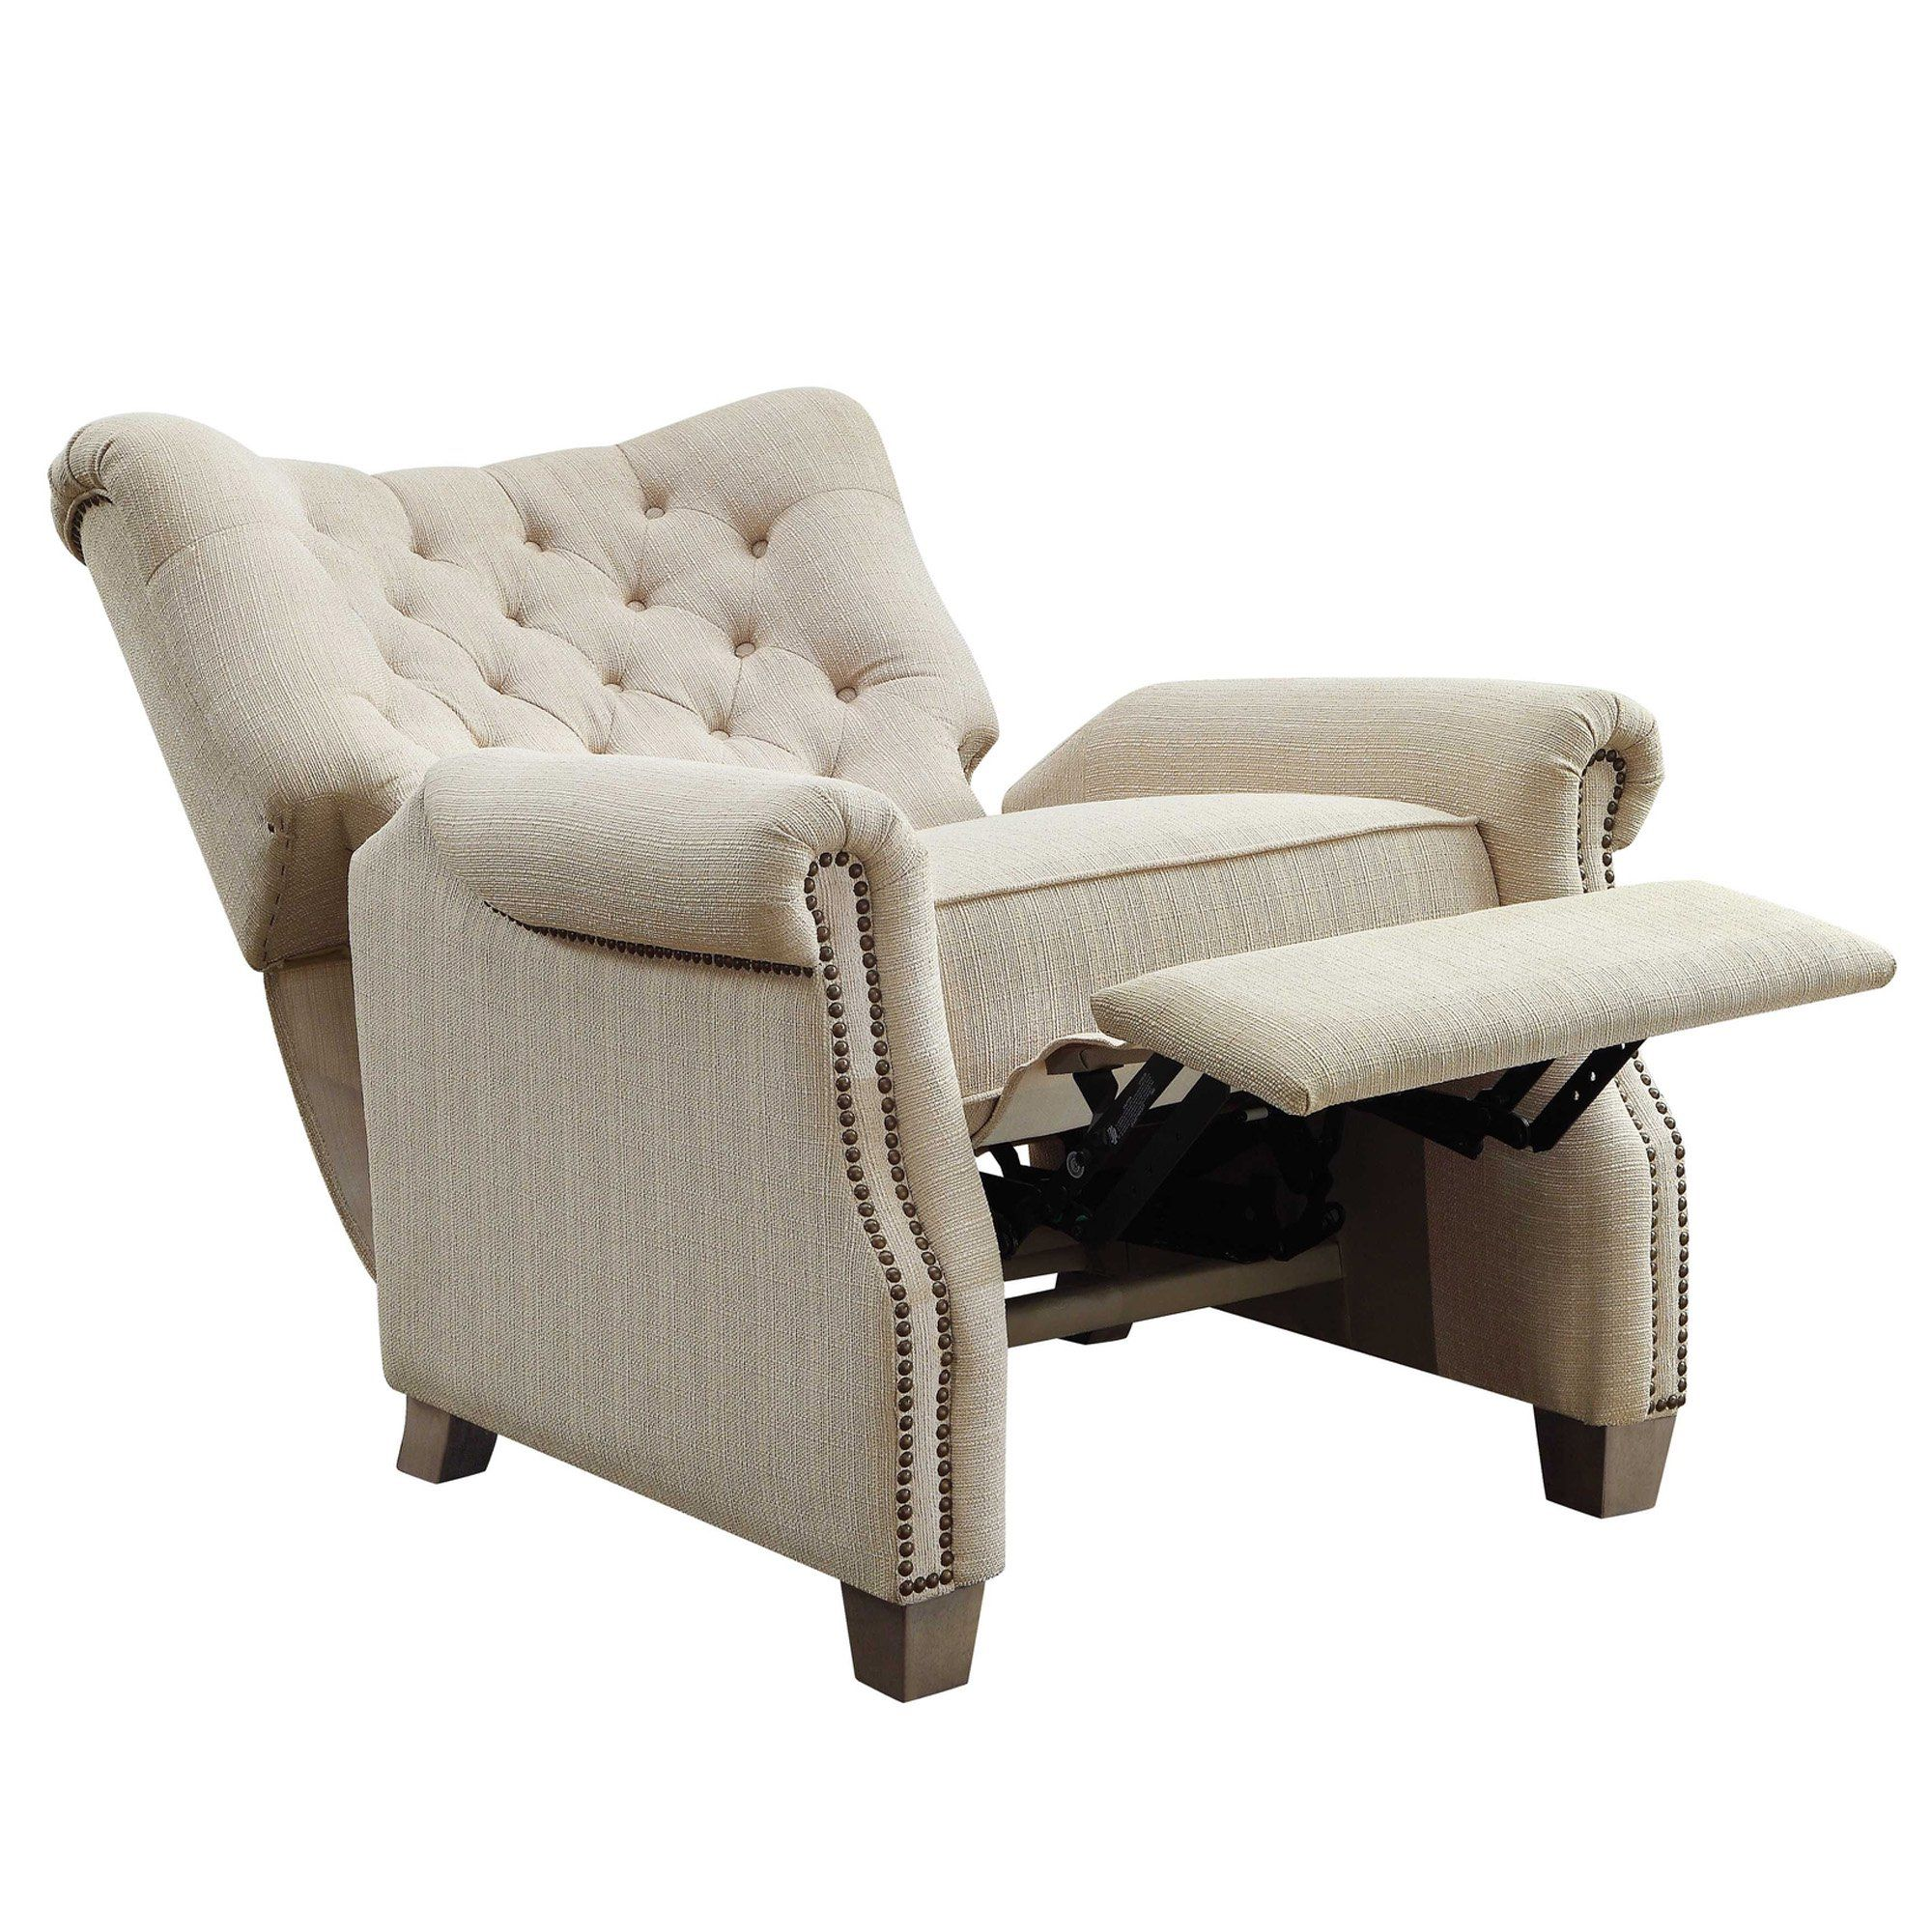 Better Homes and Garden Tufted Push Back Recliner, Beige